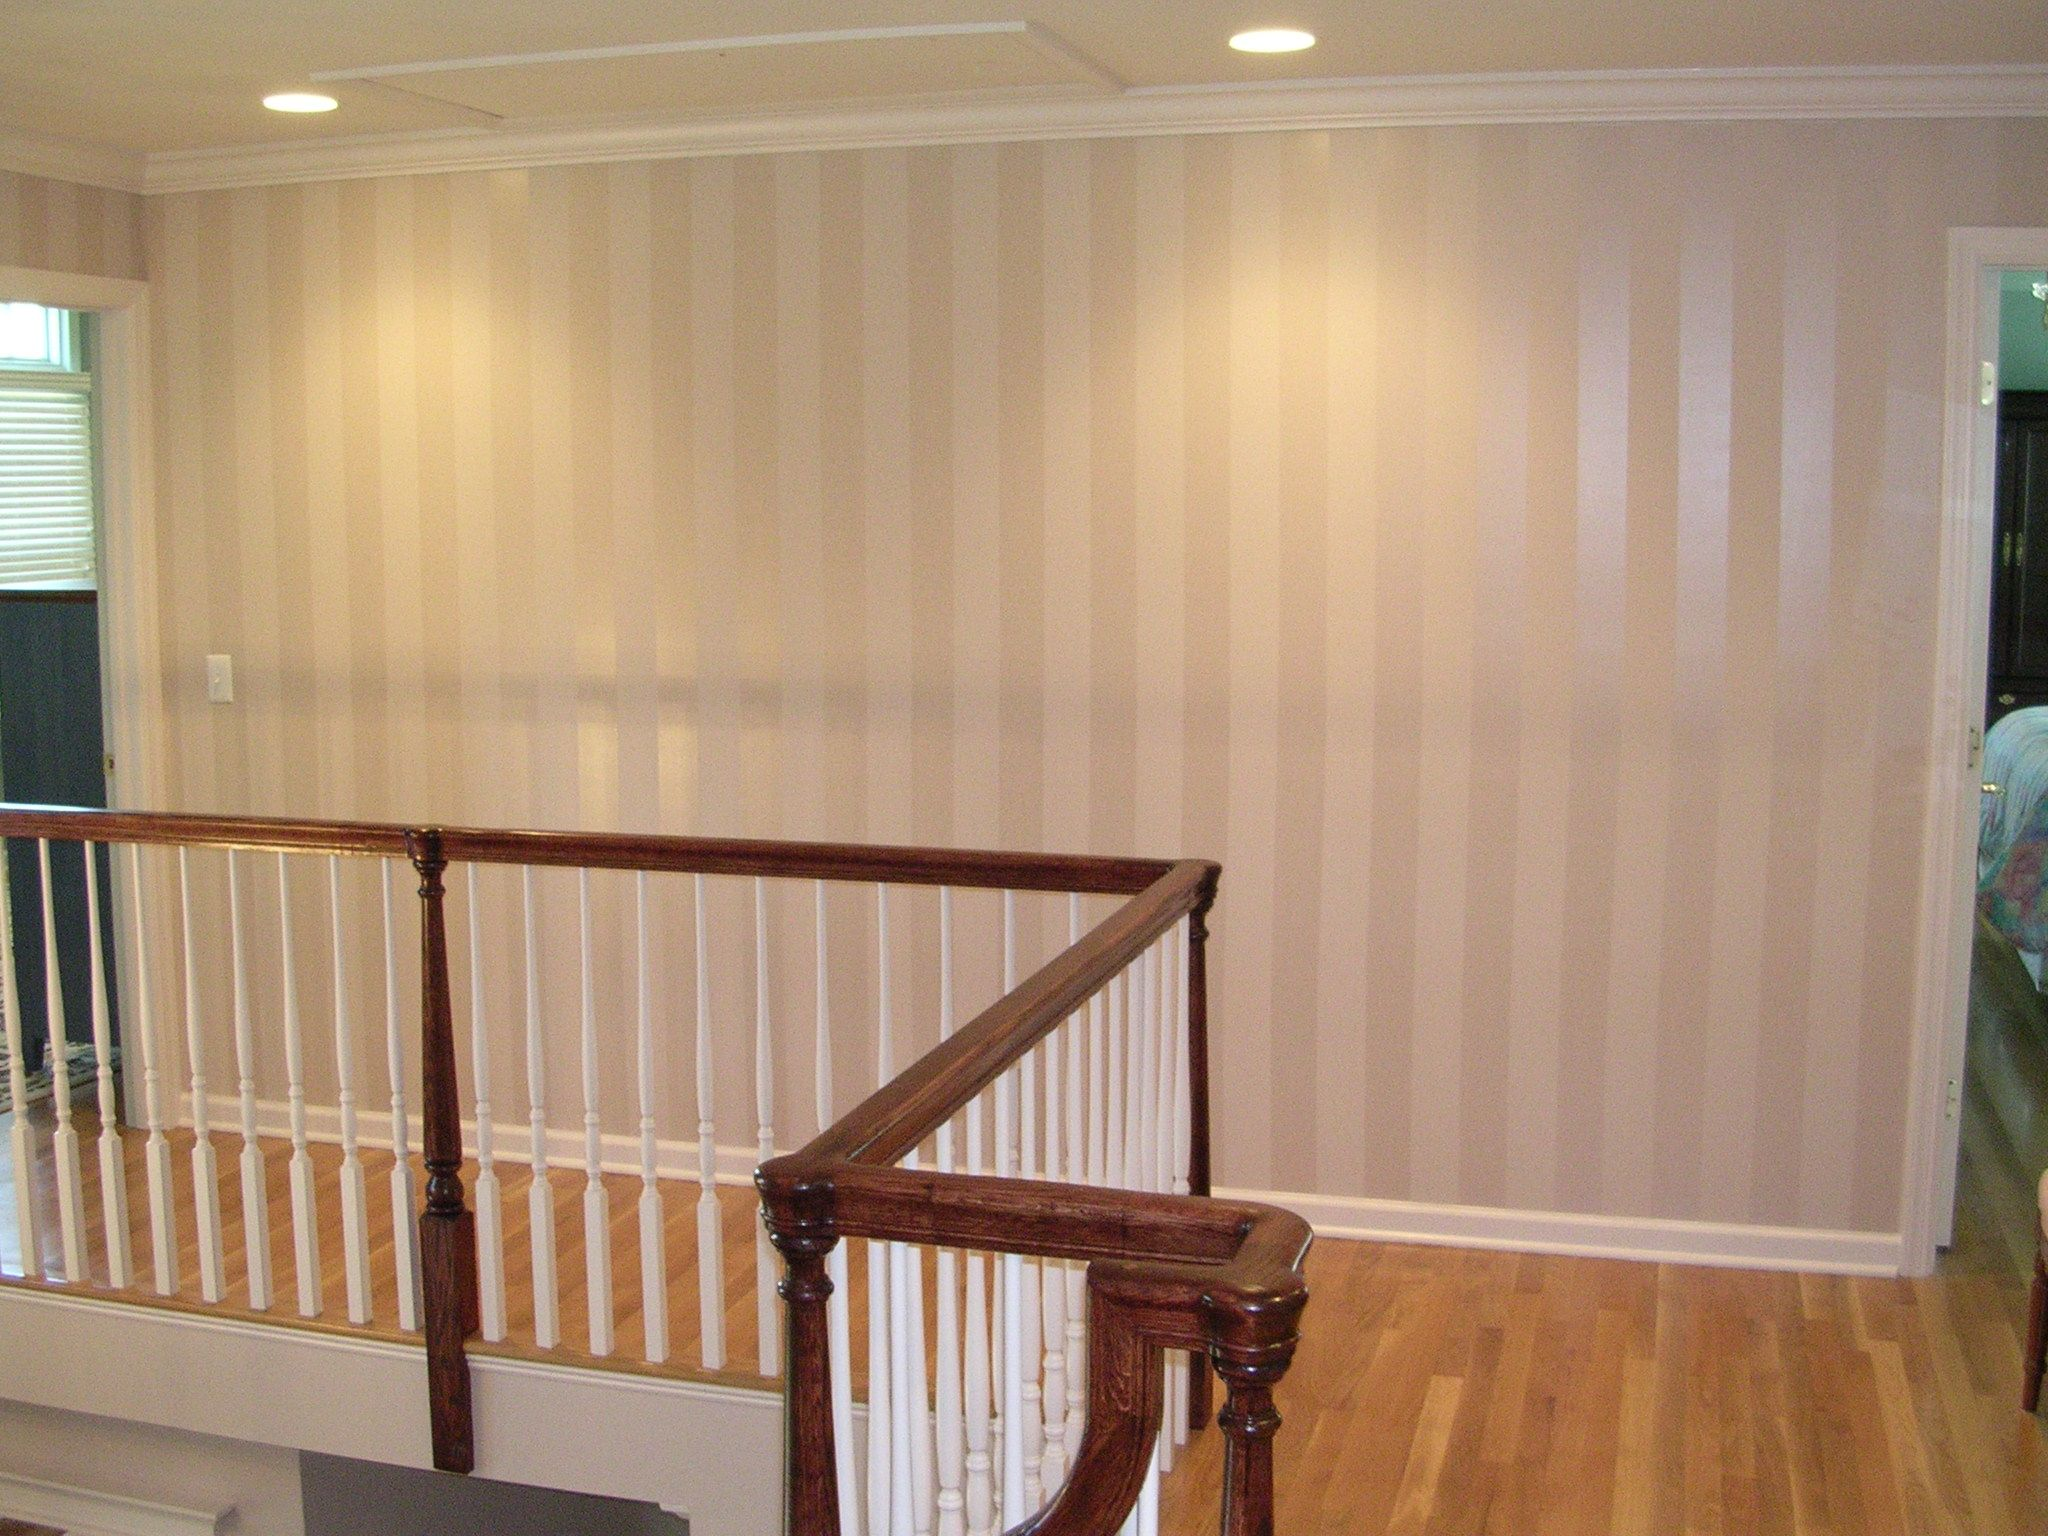 Flat gloss stripes in the same color i am remembering - Matte finish paint for walls ...